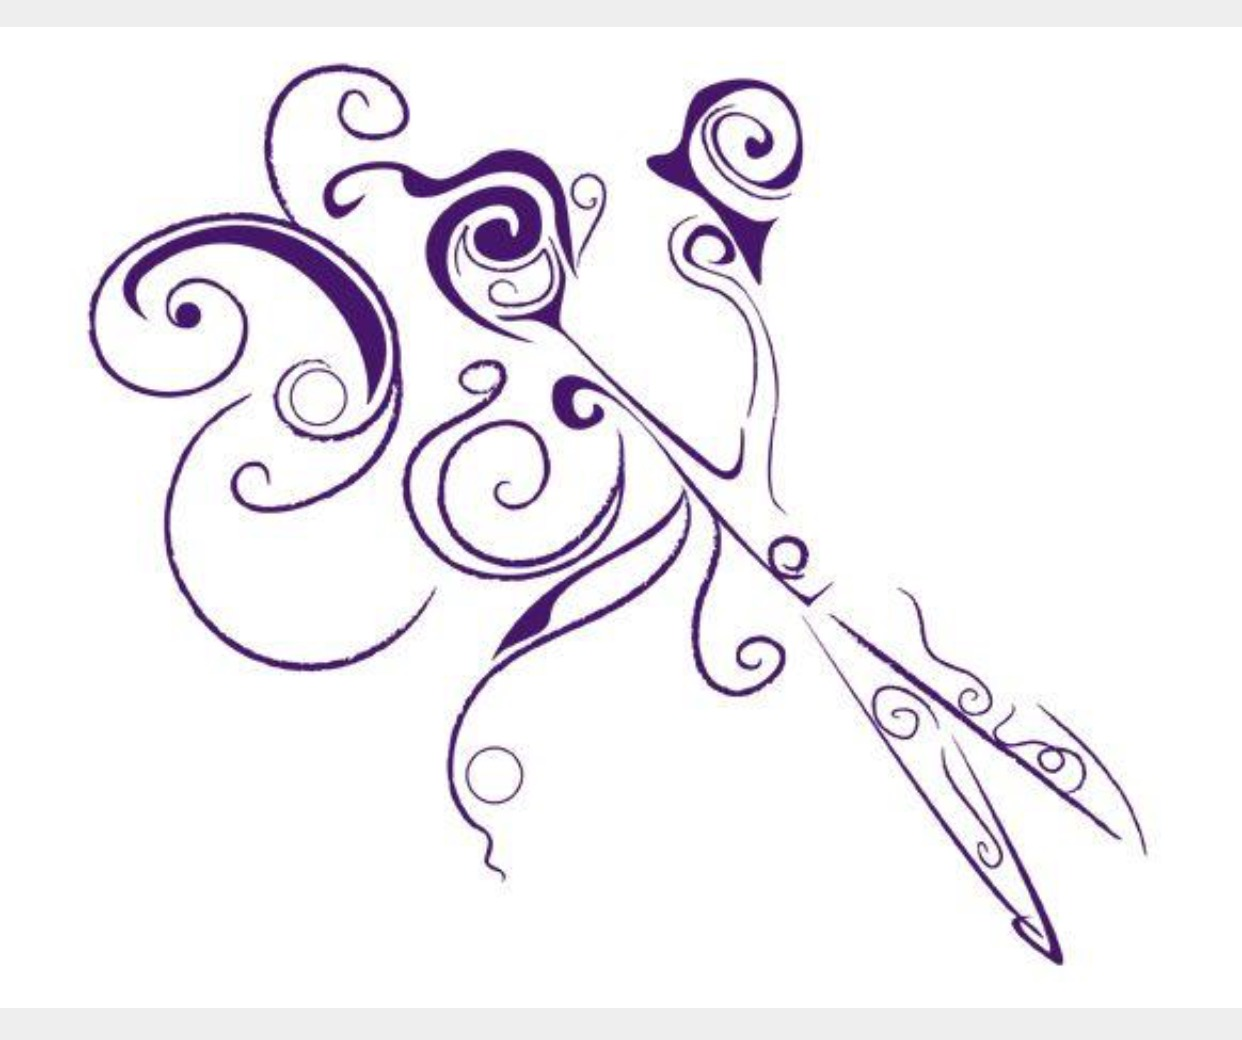 Scissor clipart hairdresser scissors. And comb drawing at